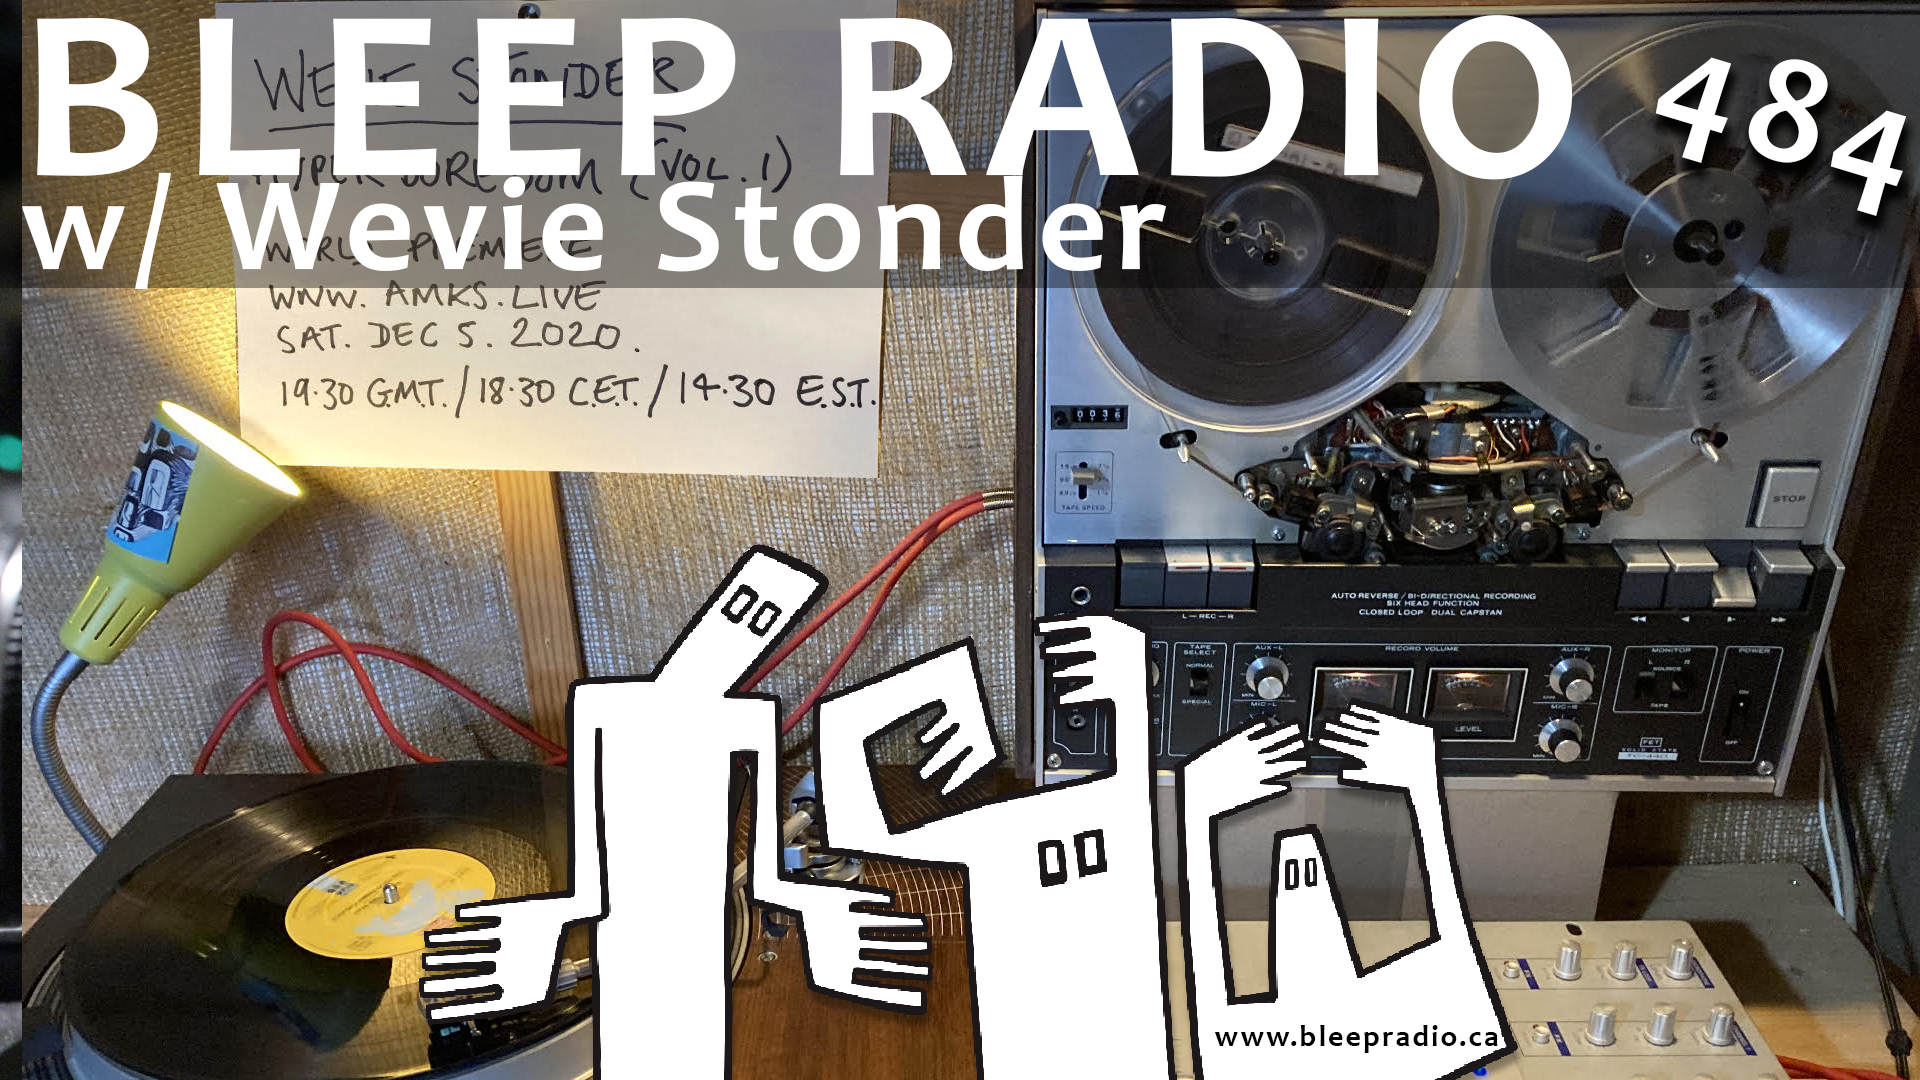 Bleep Radio #484 w/ Wevie Stonder